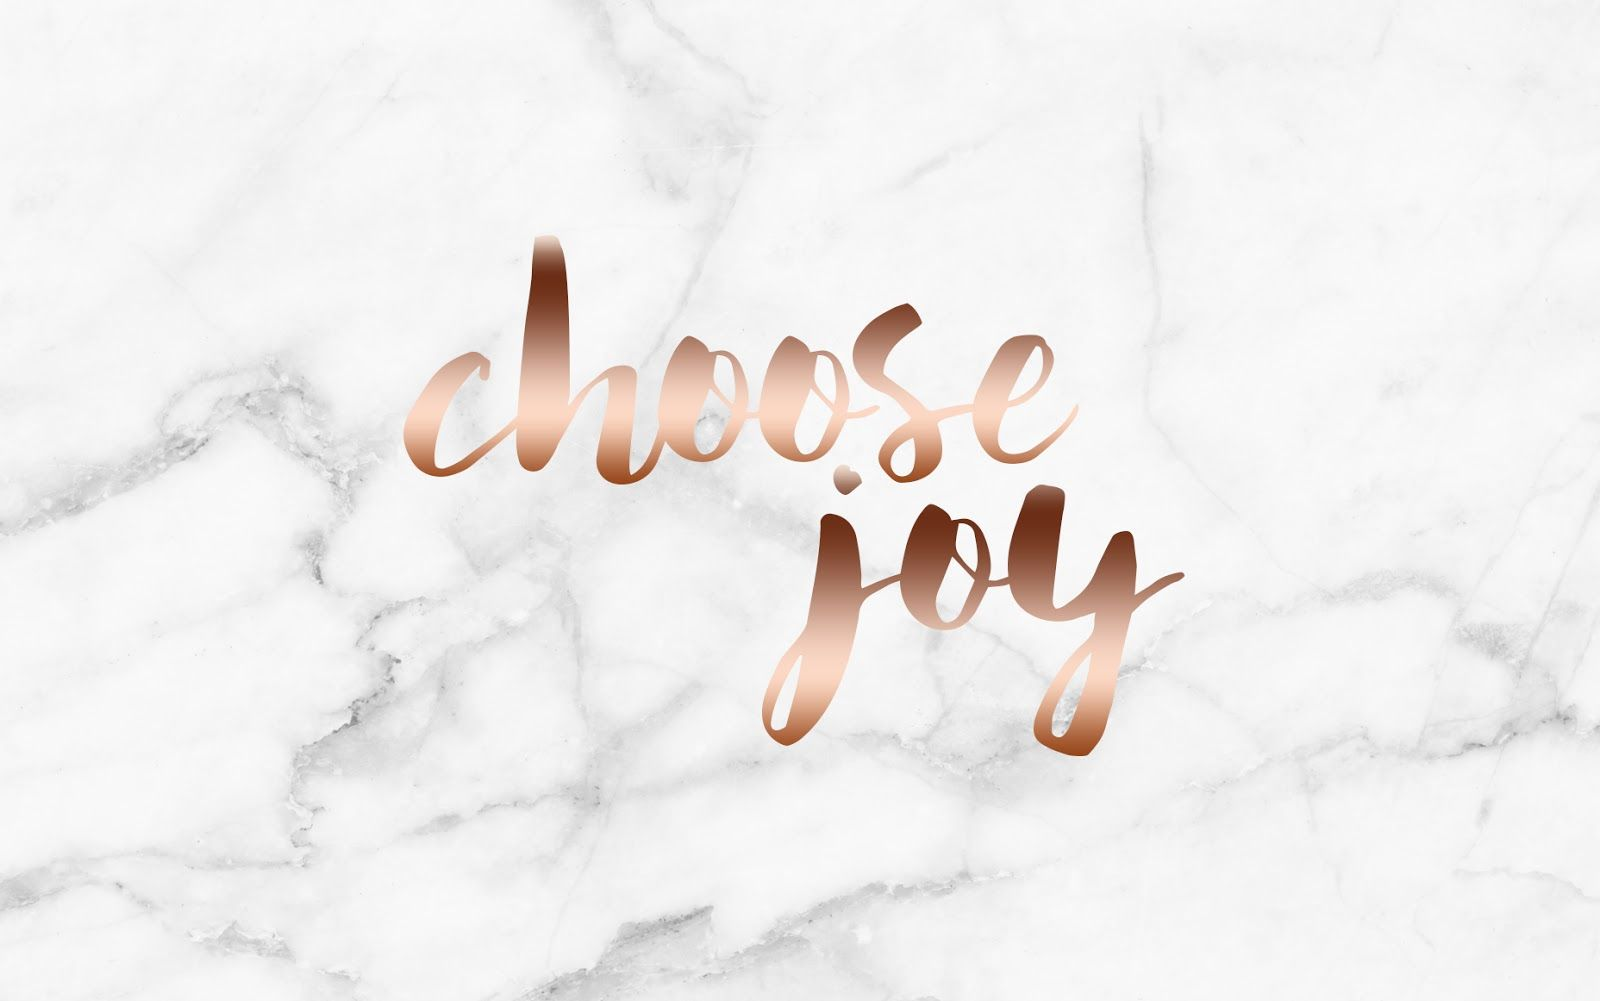 Rose Gold Marble Wallpaper With Words